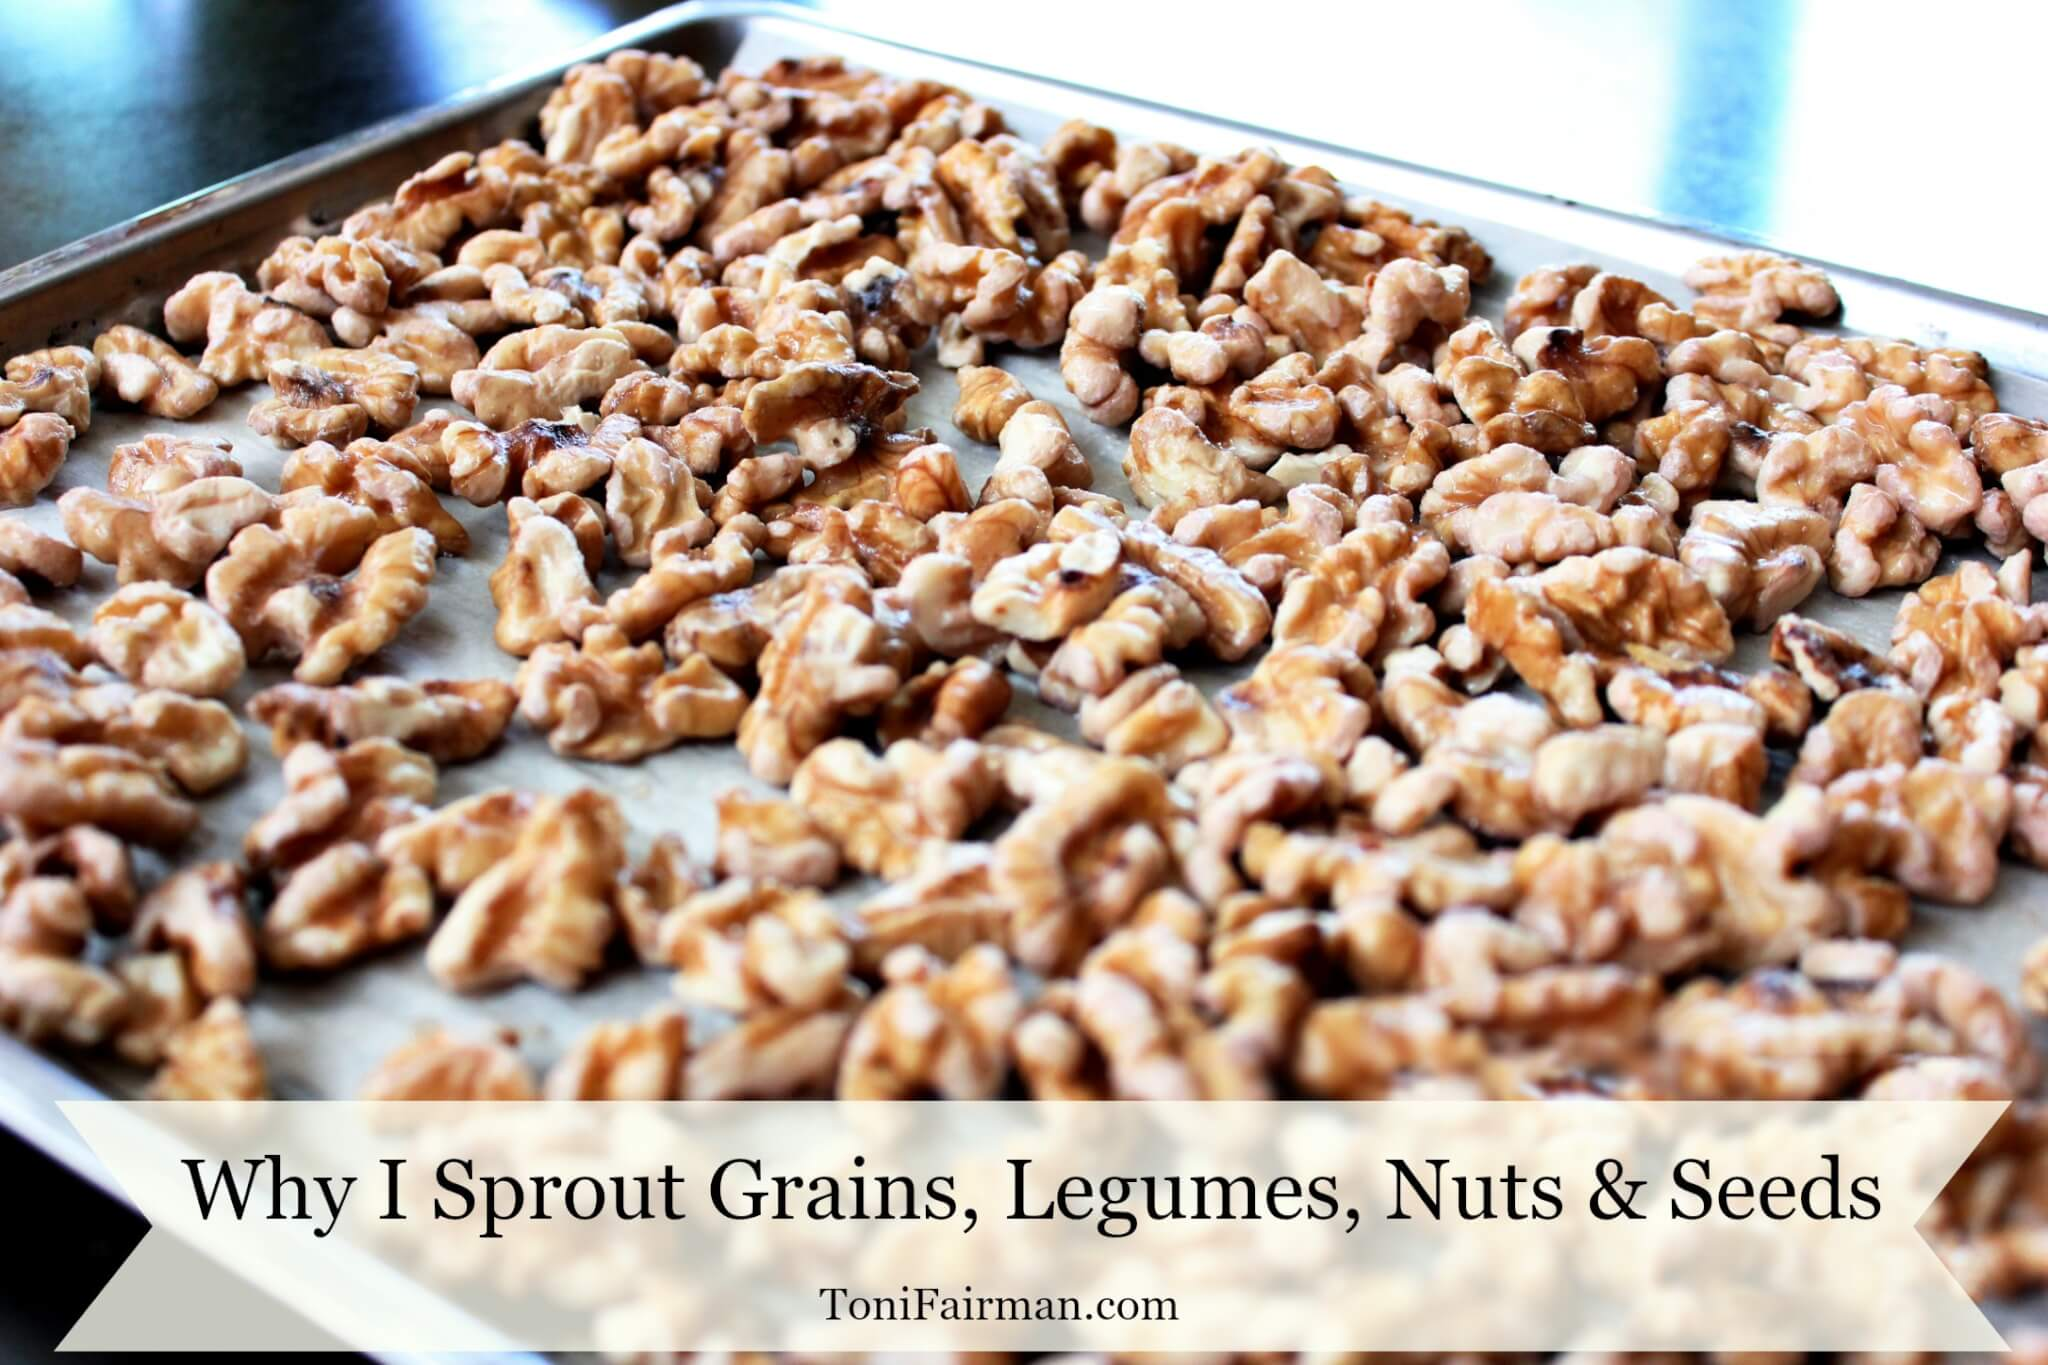 Why I Sprout Grains, Legumes, Nuts and Seeds